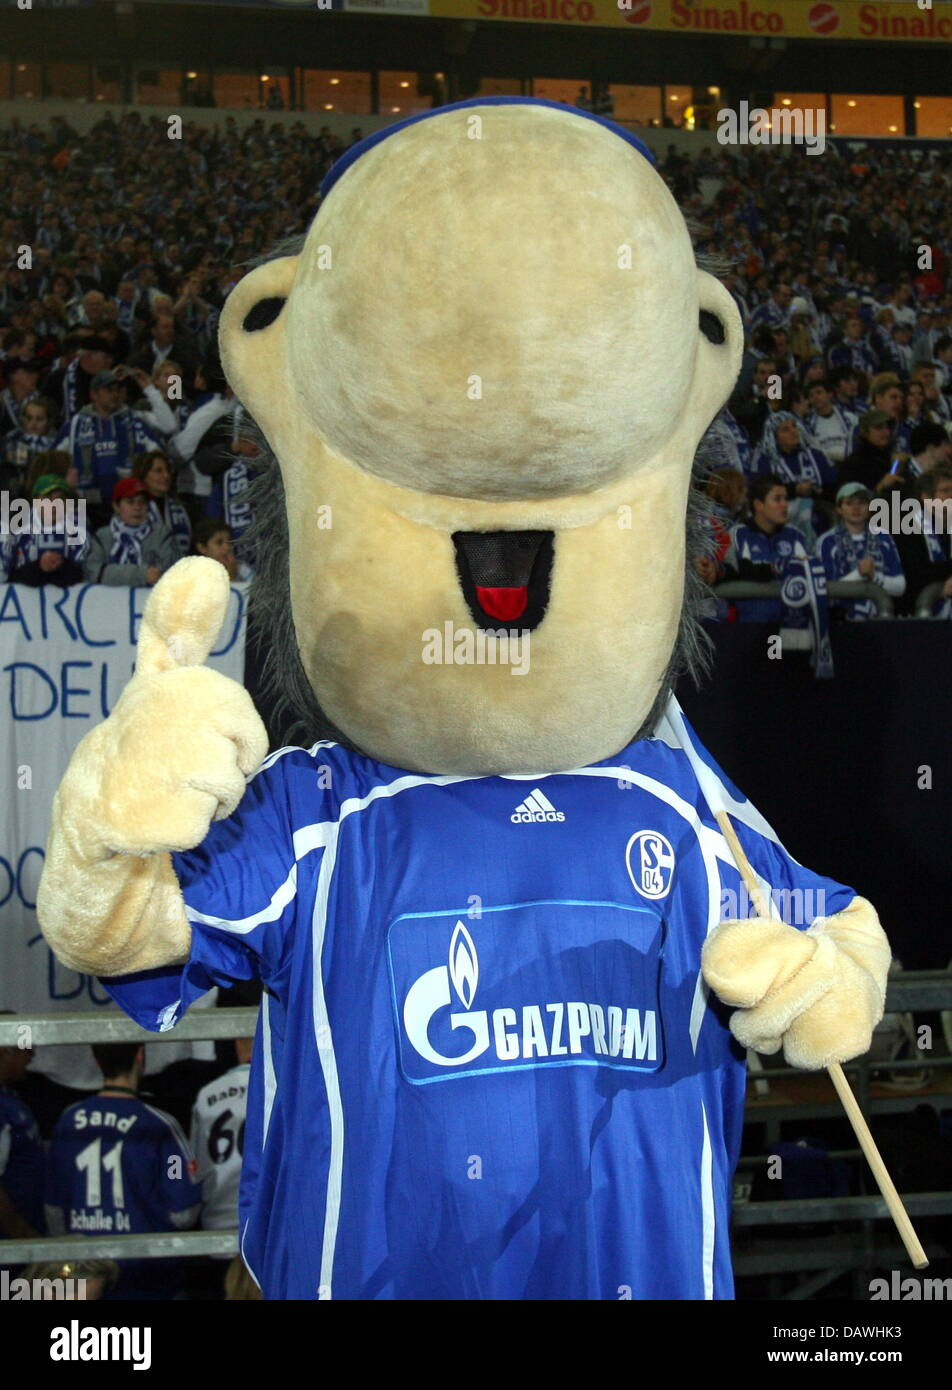 Erwin The Mascot Of Bundeliga Club Fc Schalke 04 Pictured During Stock Photo Alamy